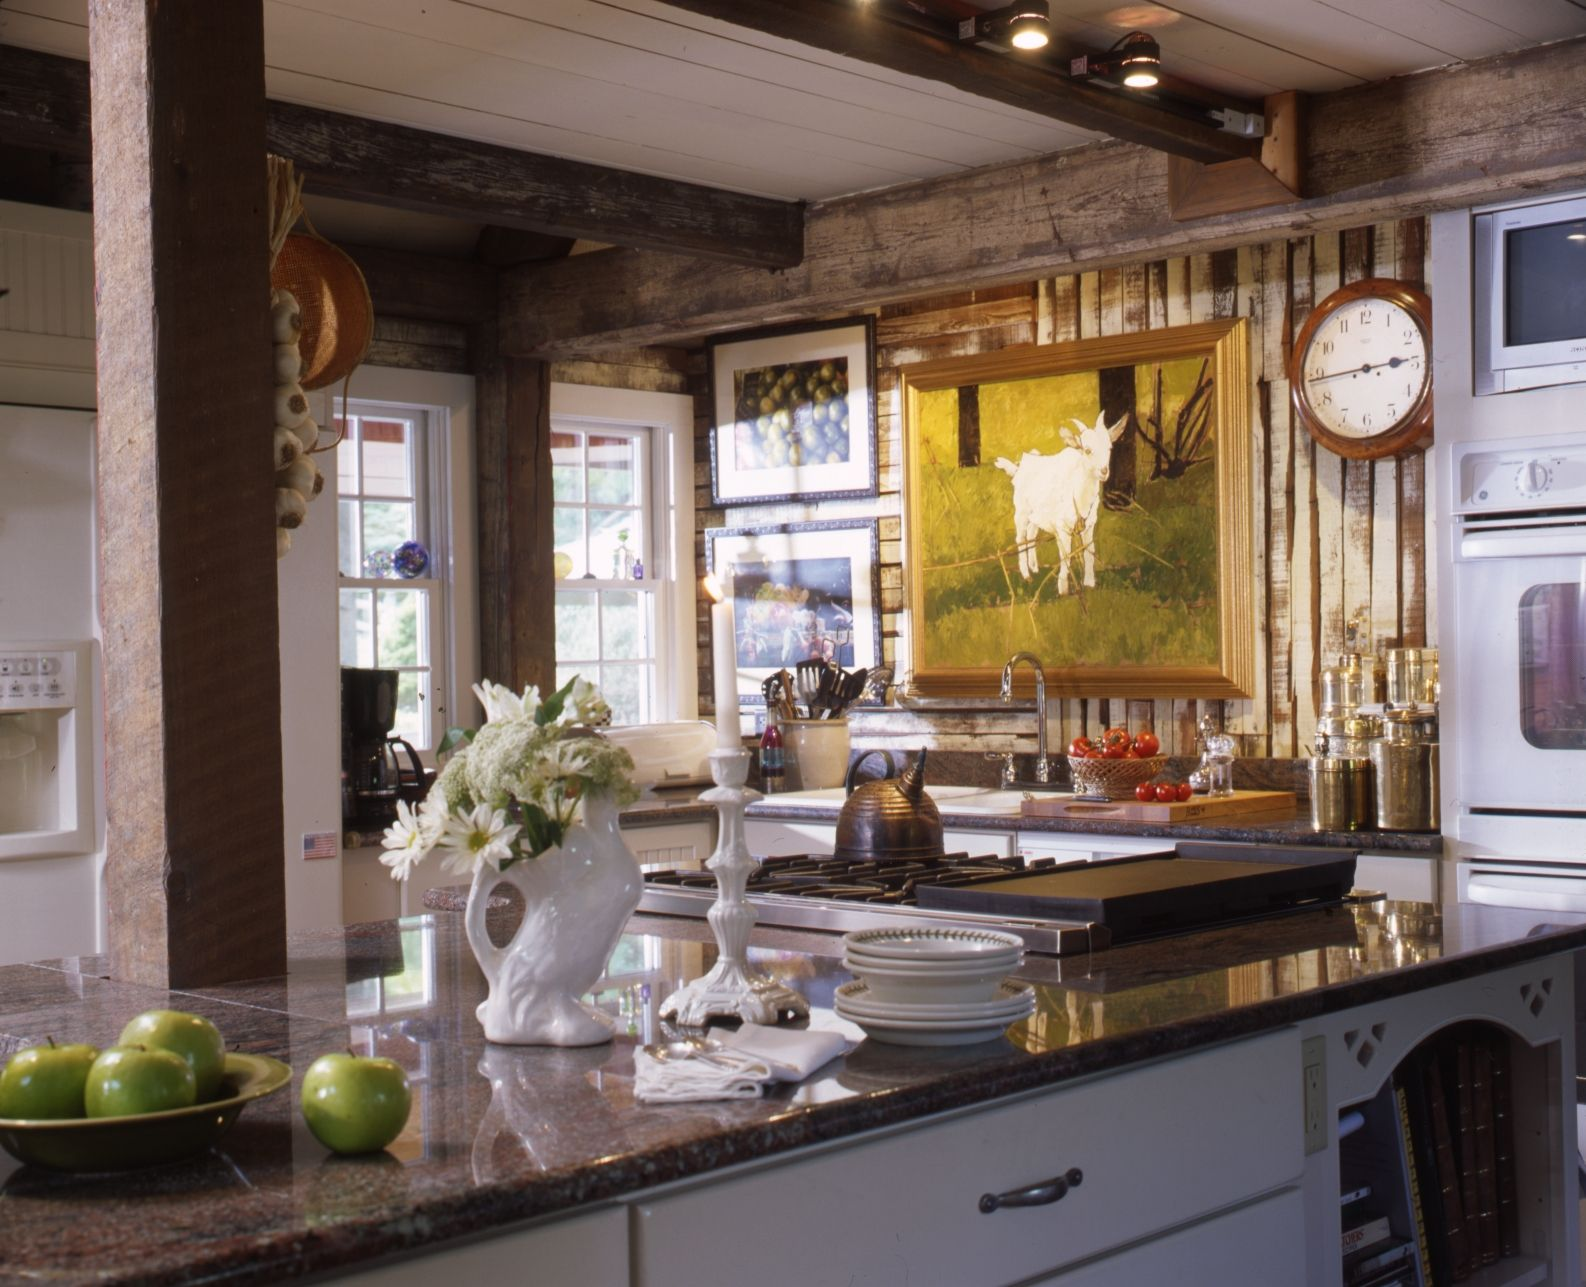 Rustic Kitchen Nuance for Modern House | French country kitchens ...